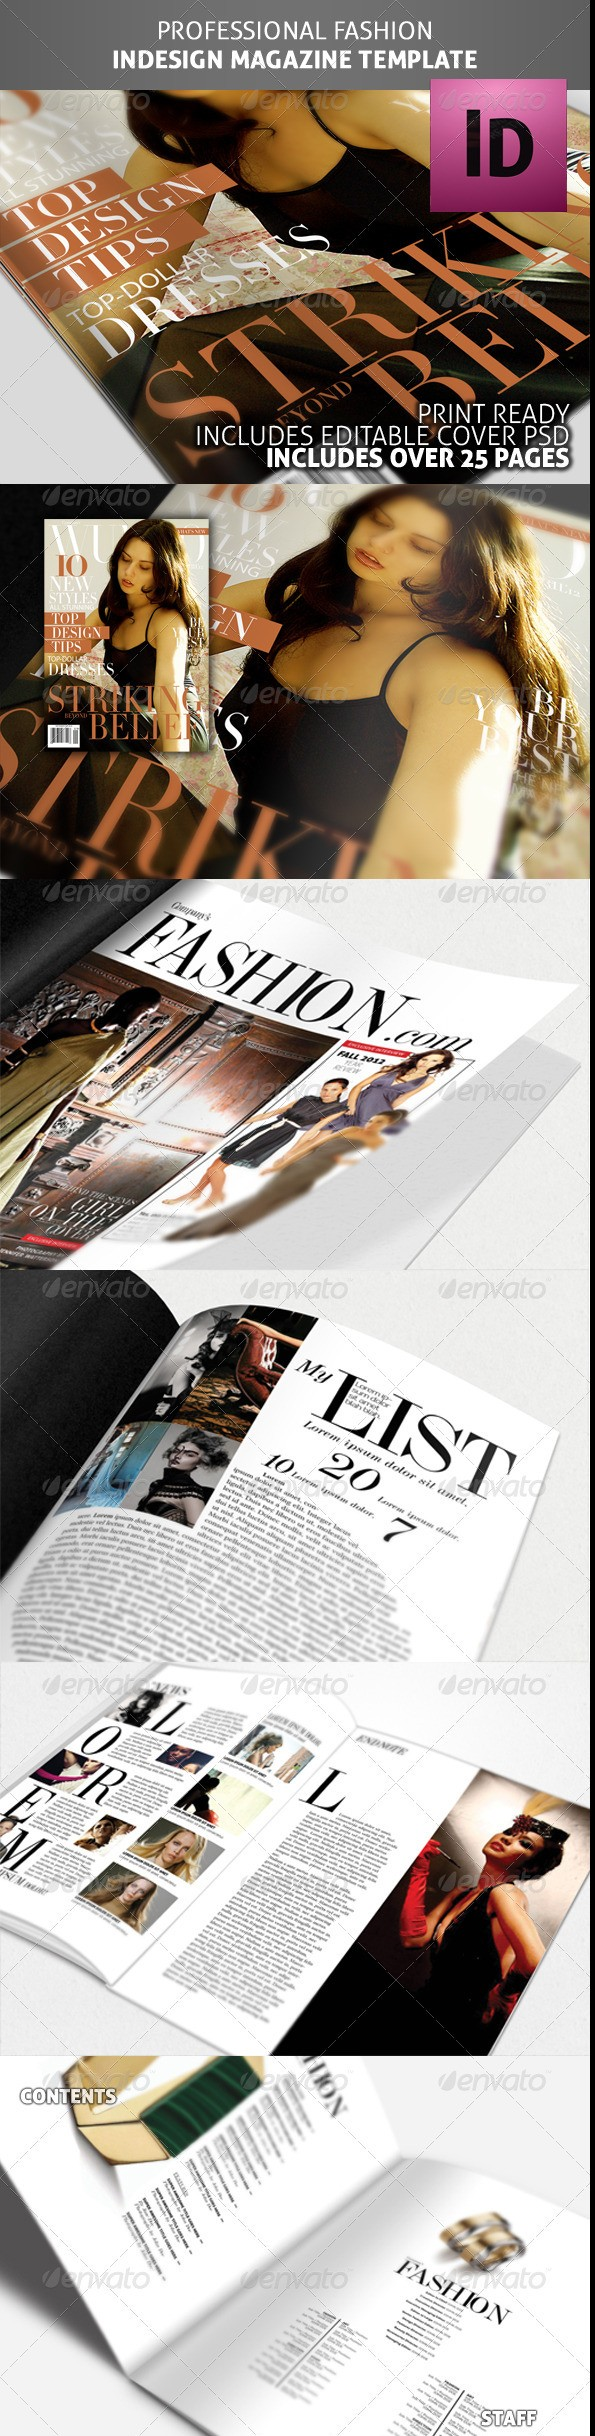 Pro InDesign Fashion Magazine Template